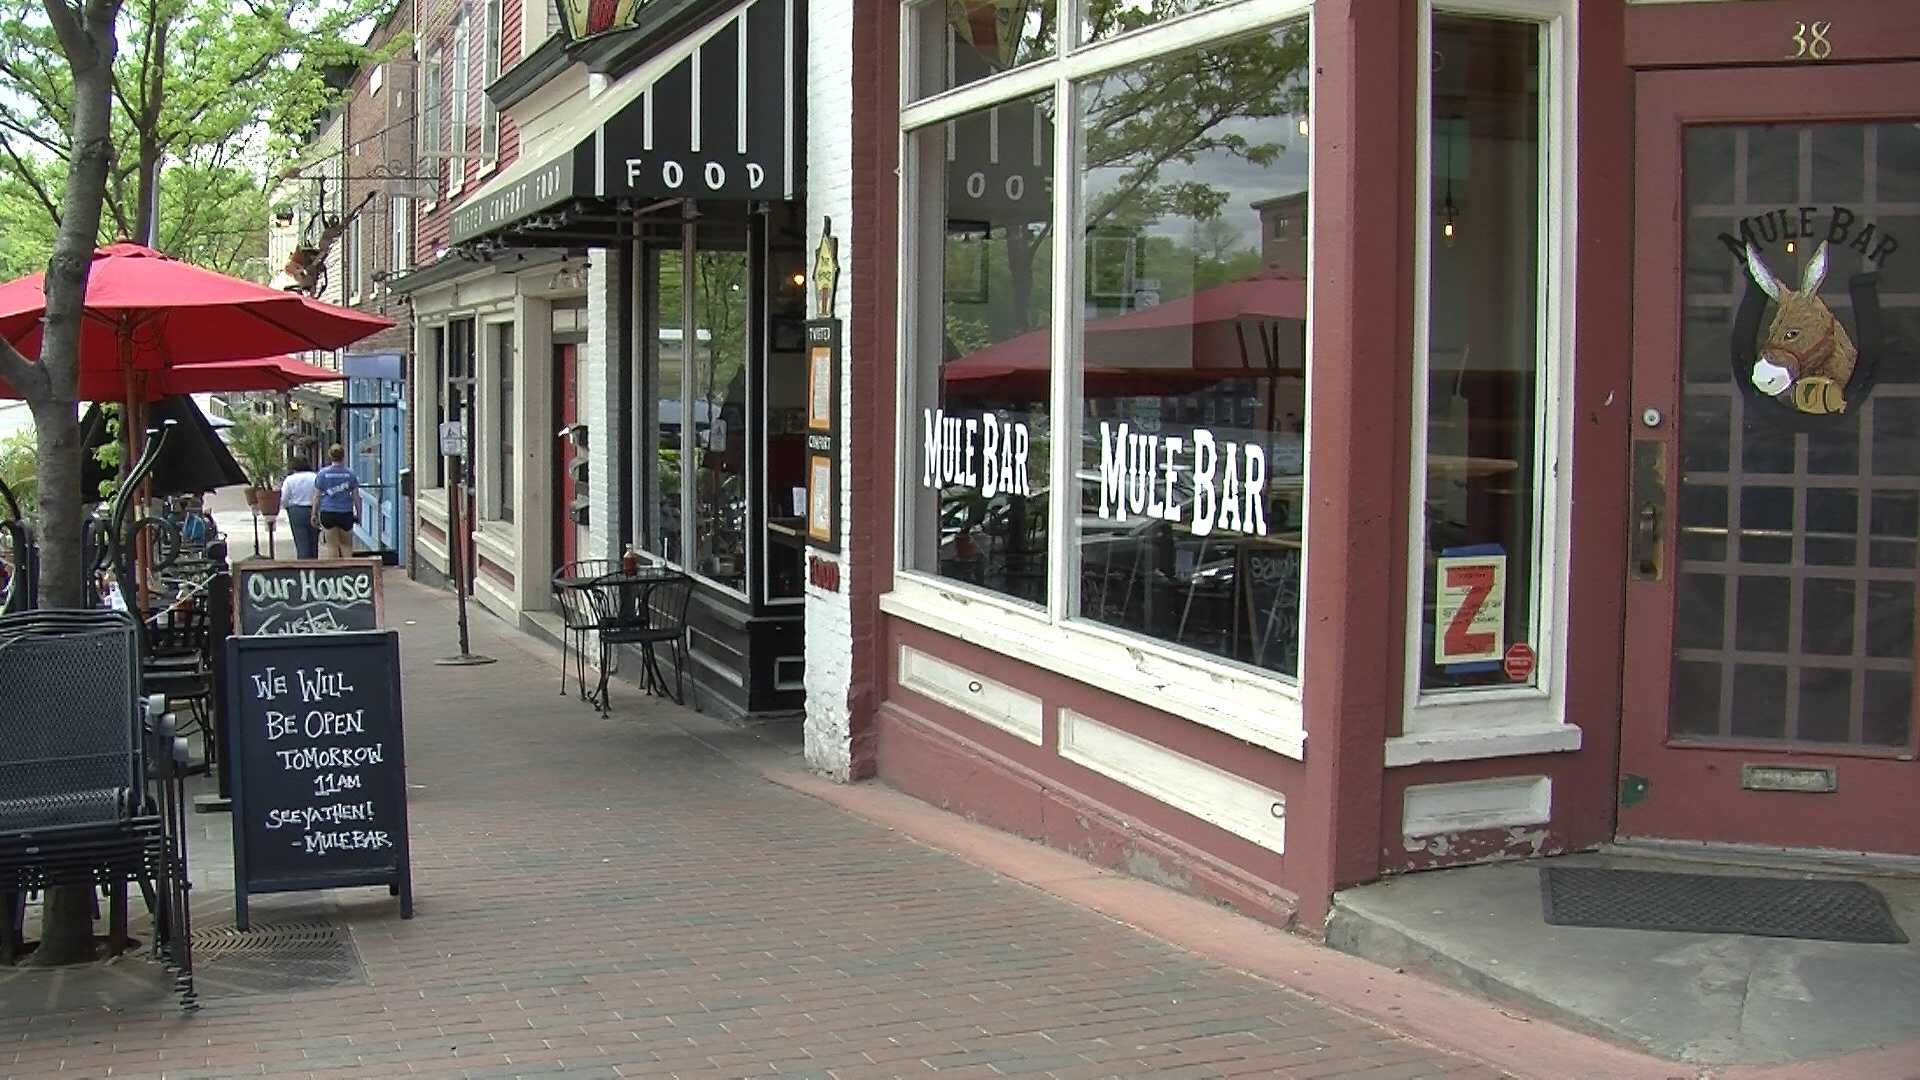 The Burlington and greater Burlington area will welcome some new eateries in the coming days, weeks and months.